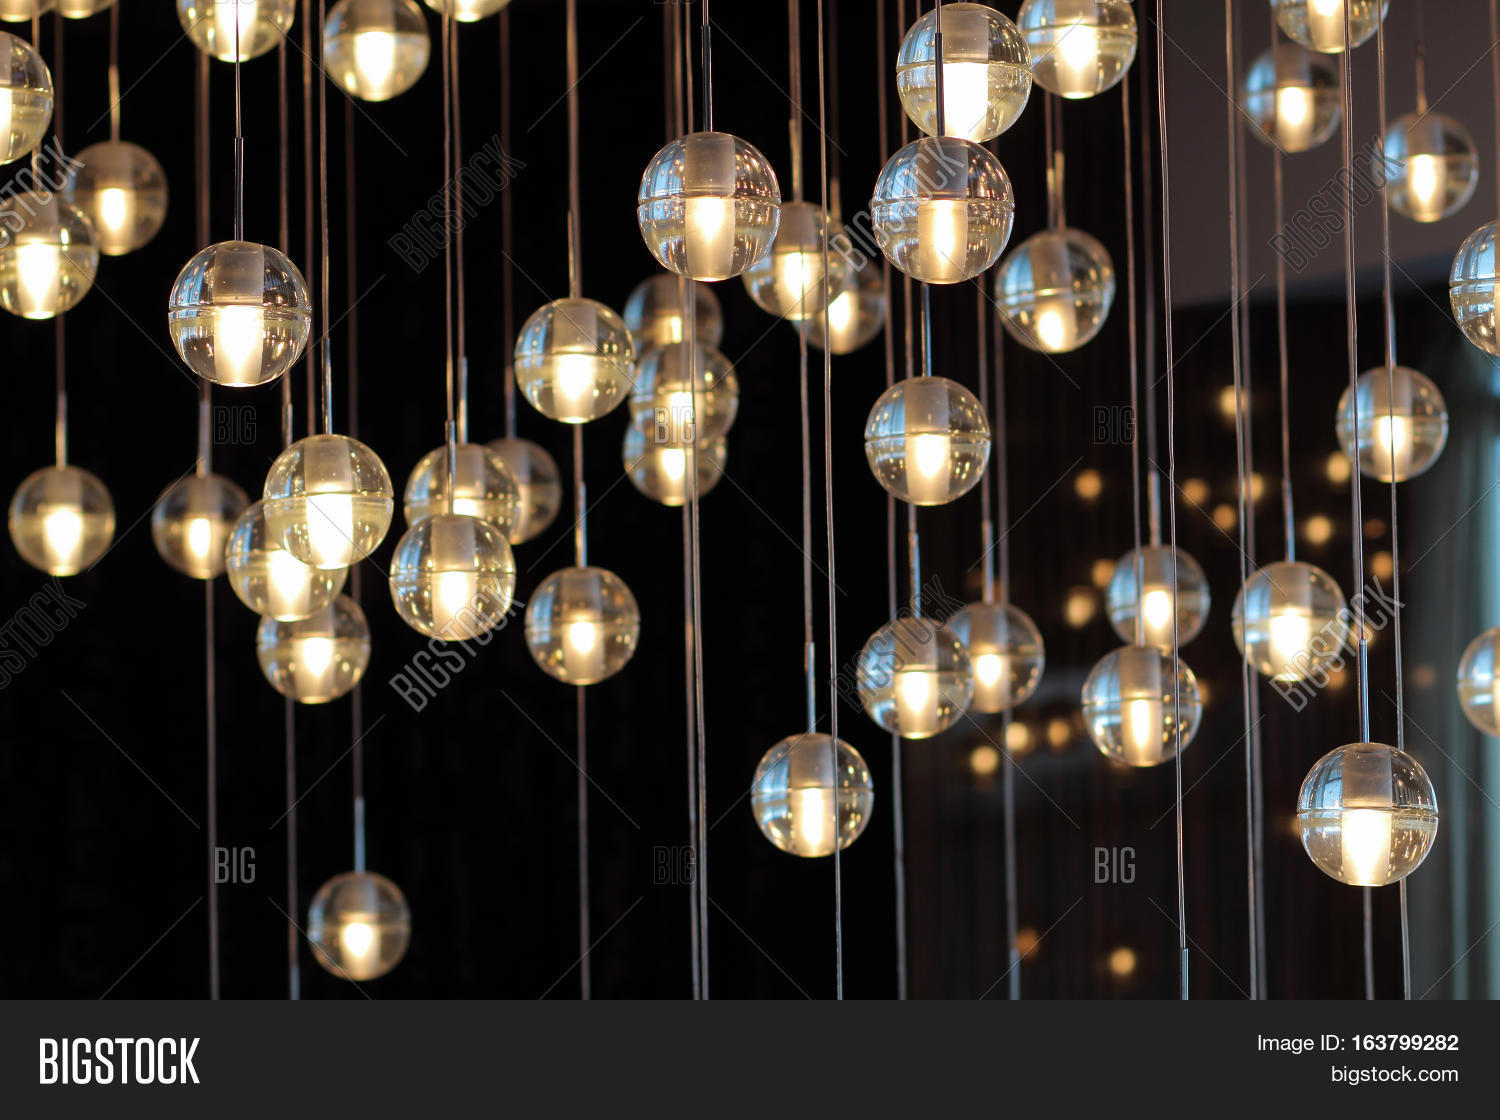 Lighting balls on image photo free trial bigstock lighting balls on the chandelier in the lamplight light bulbs hanging from the ceiling lamps on aloadofball Image collections